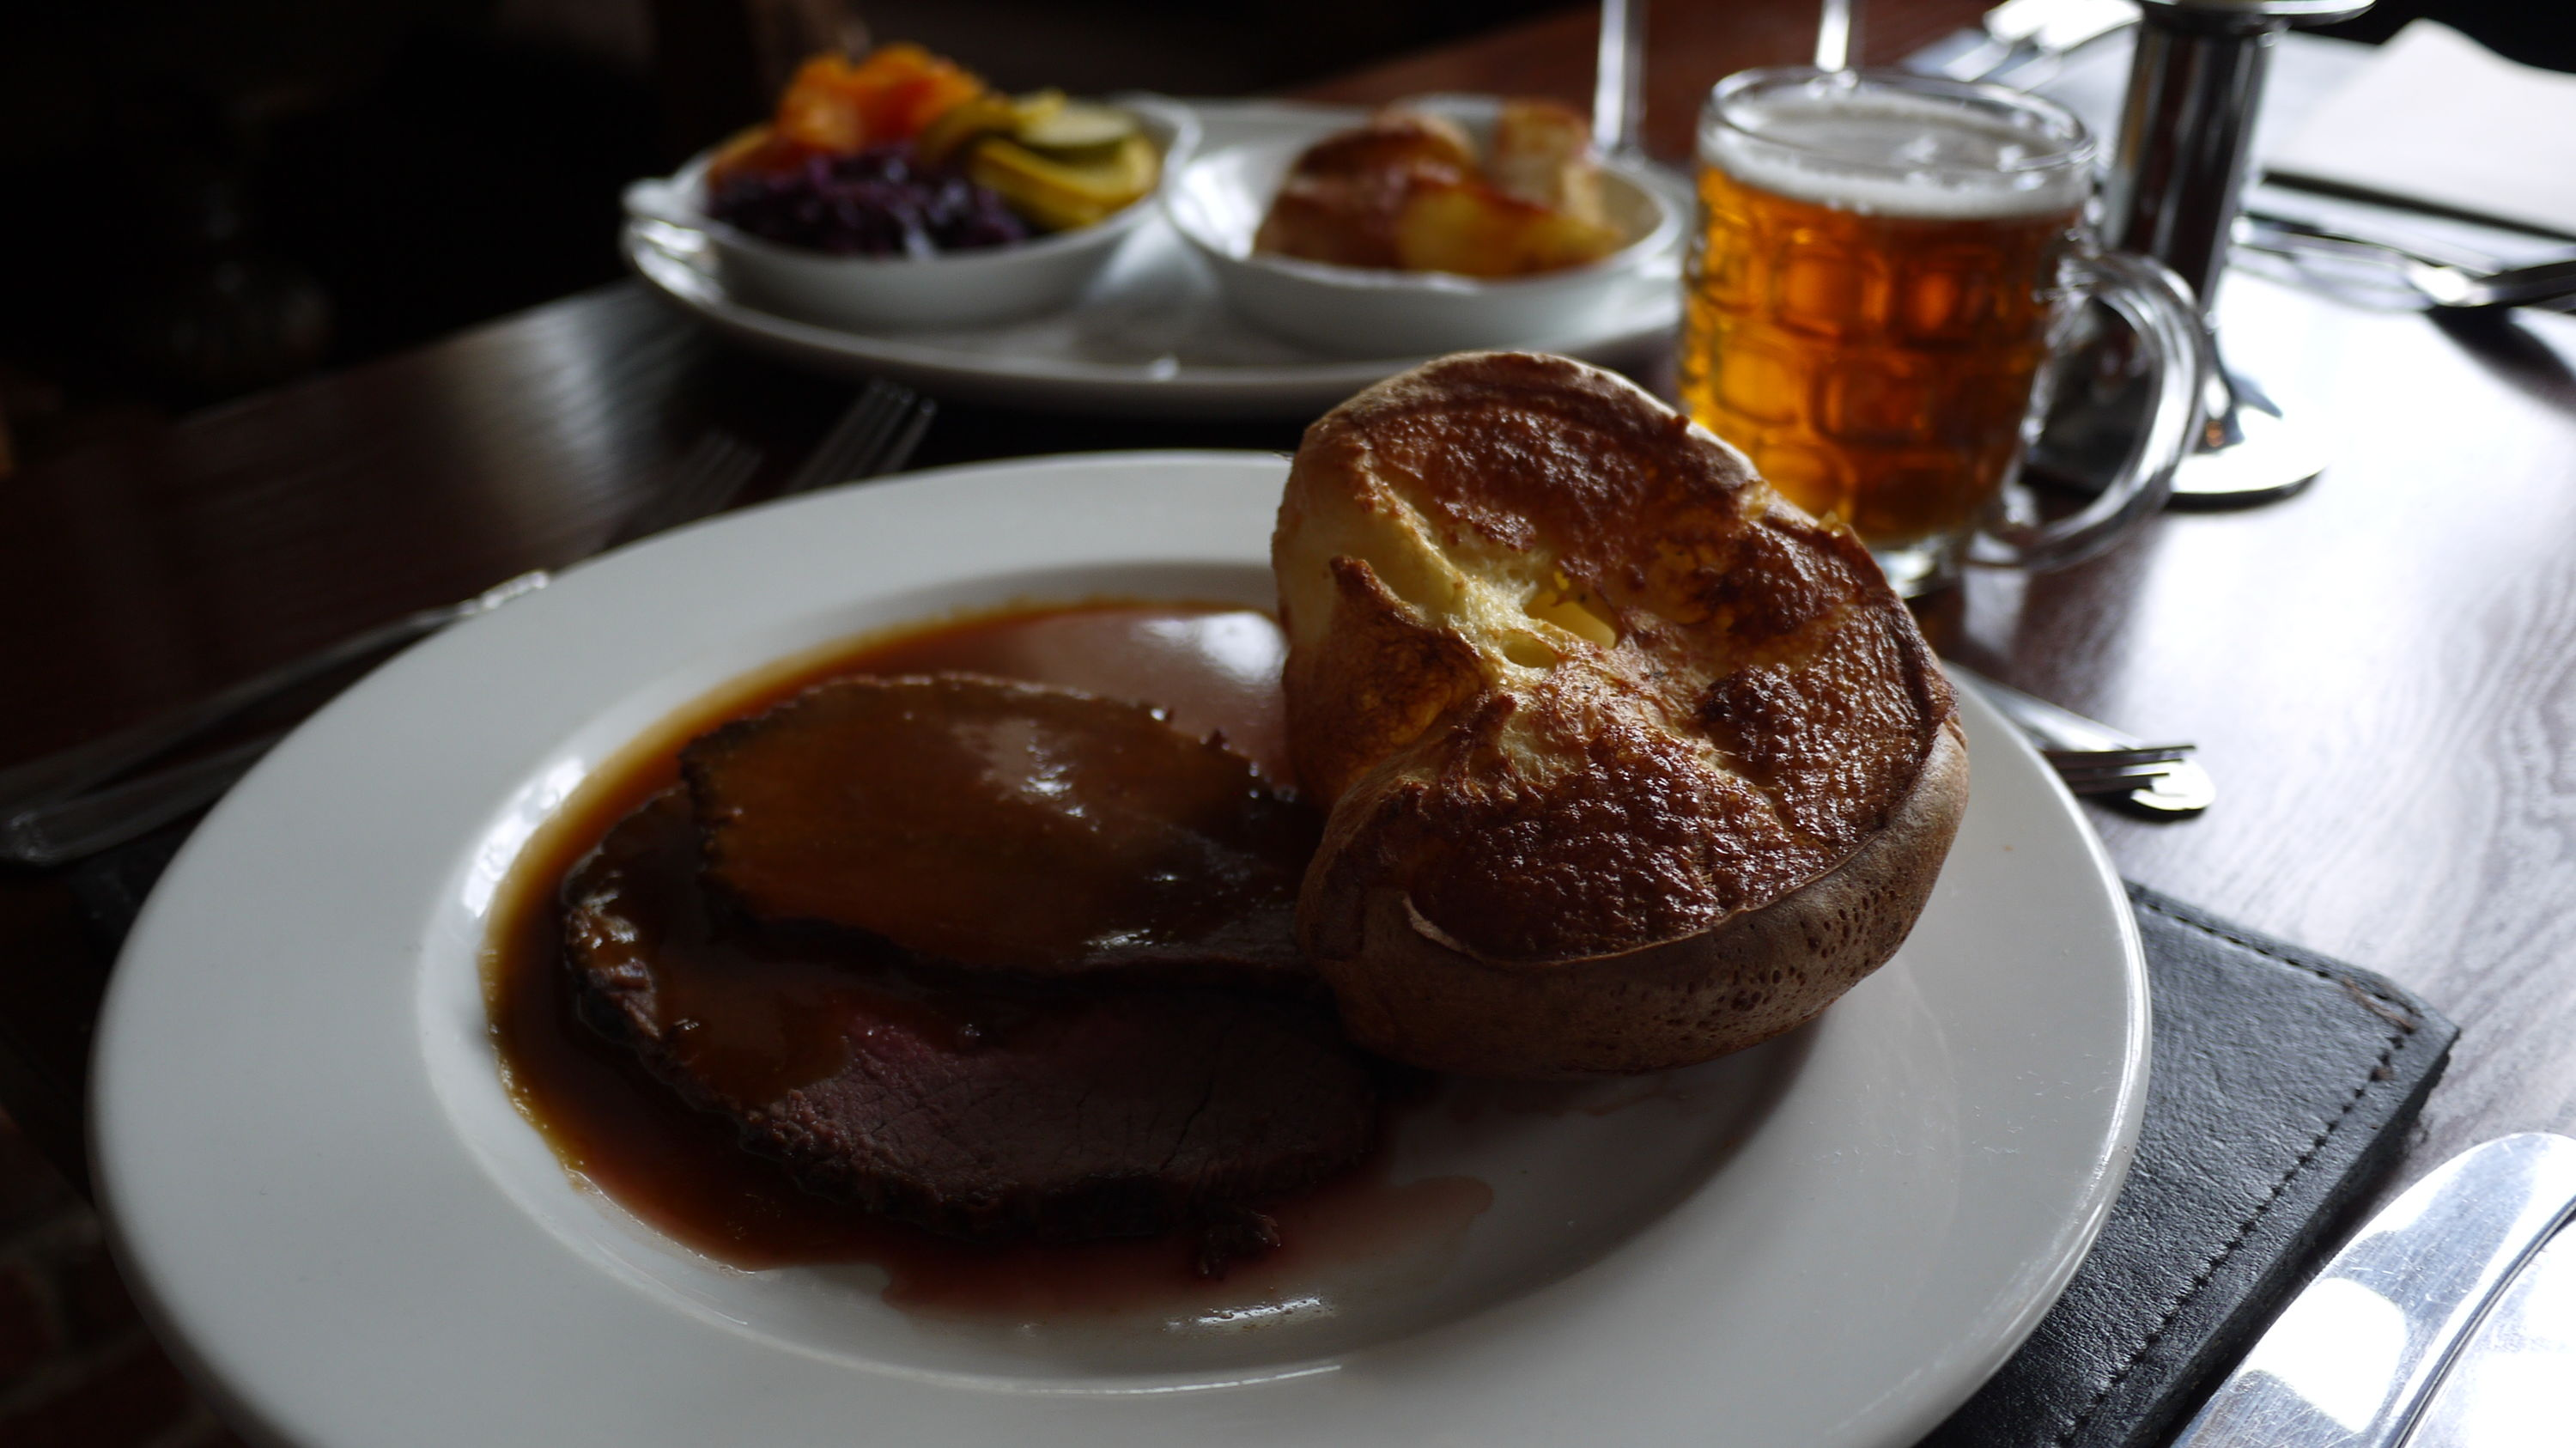 Roast Beef and Pie Cricketers 053-large.